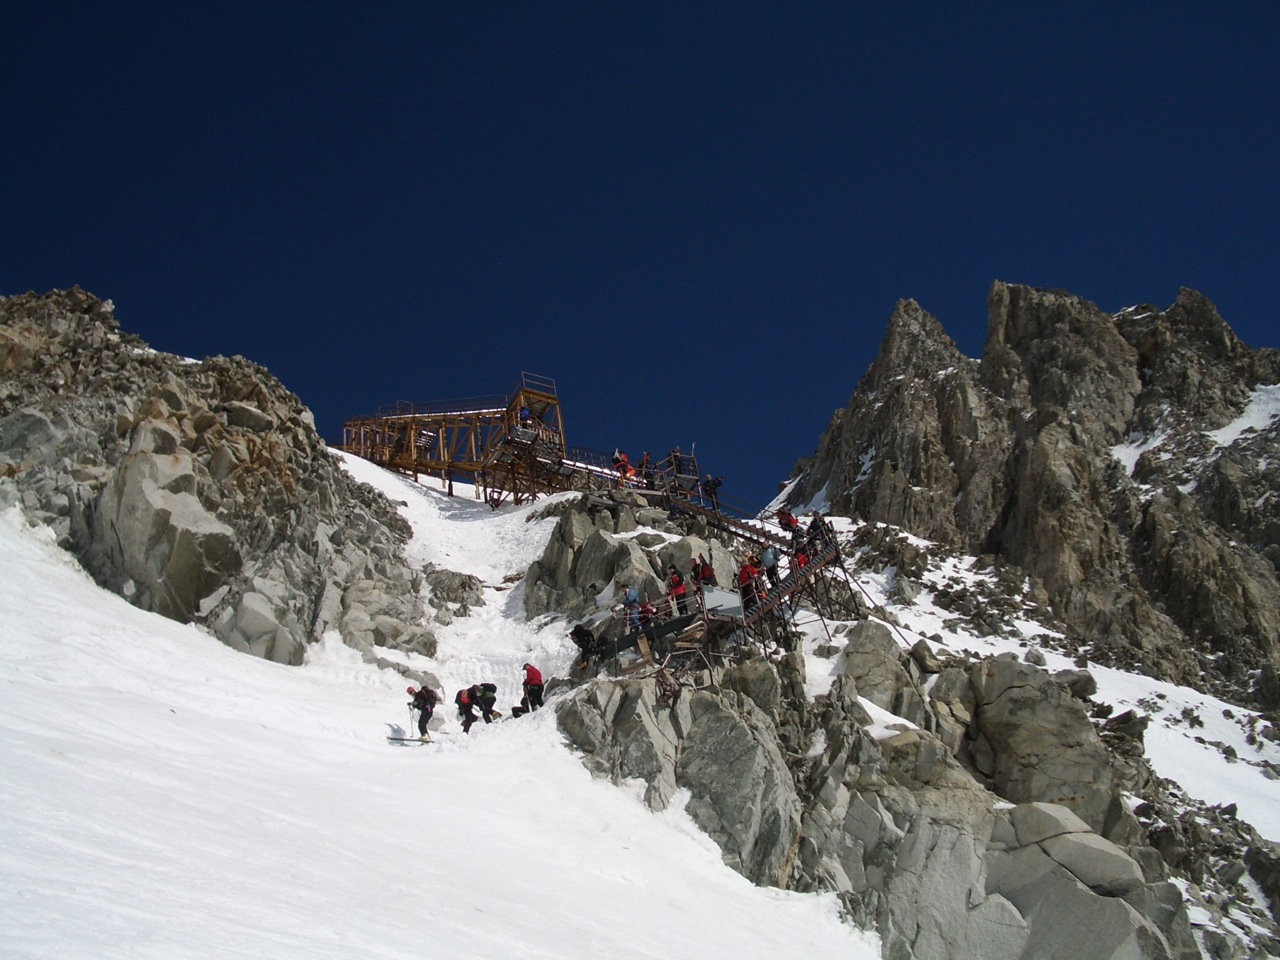 Image for article THE BEST MONT BLANC DESCENT – EVER?